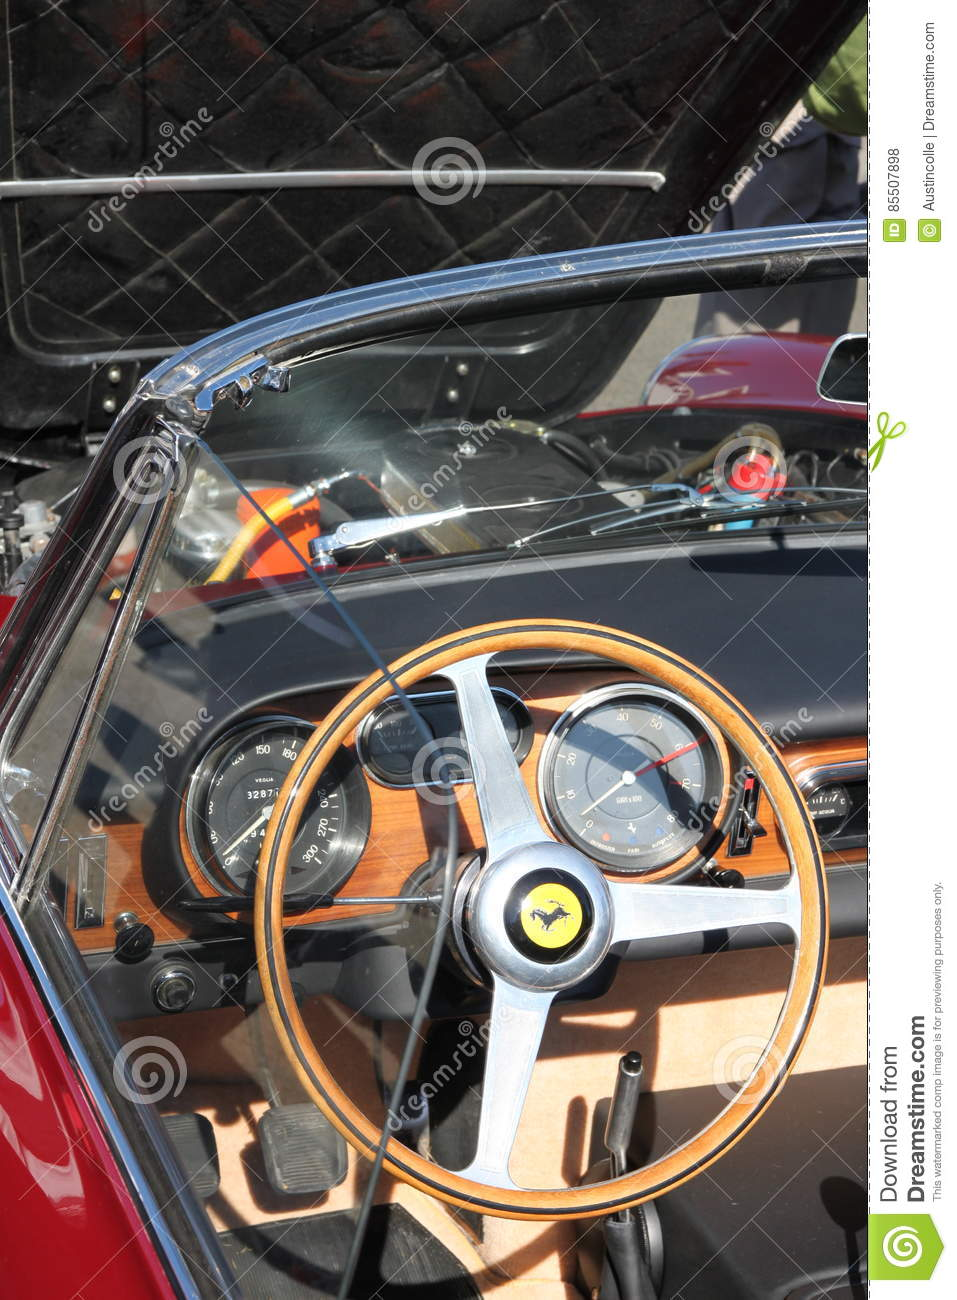 Ferrari Steering Wheel And Dash Board Of Front Engined Classic Car